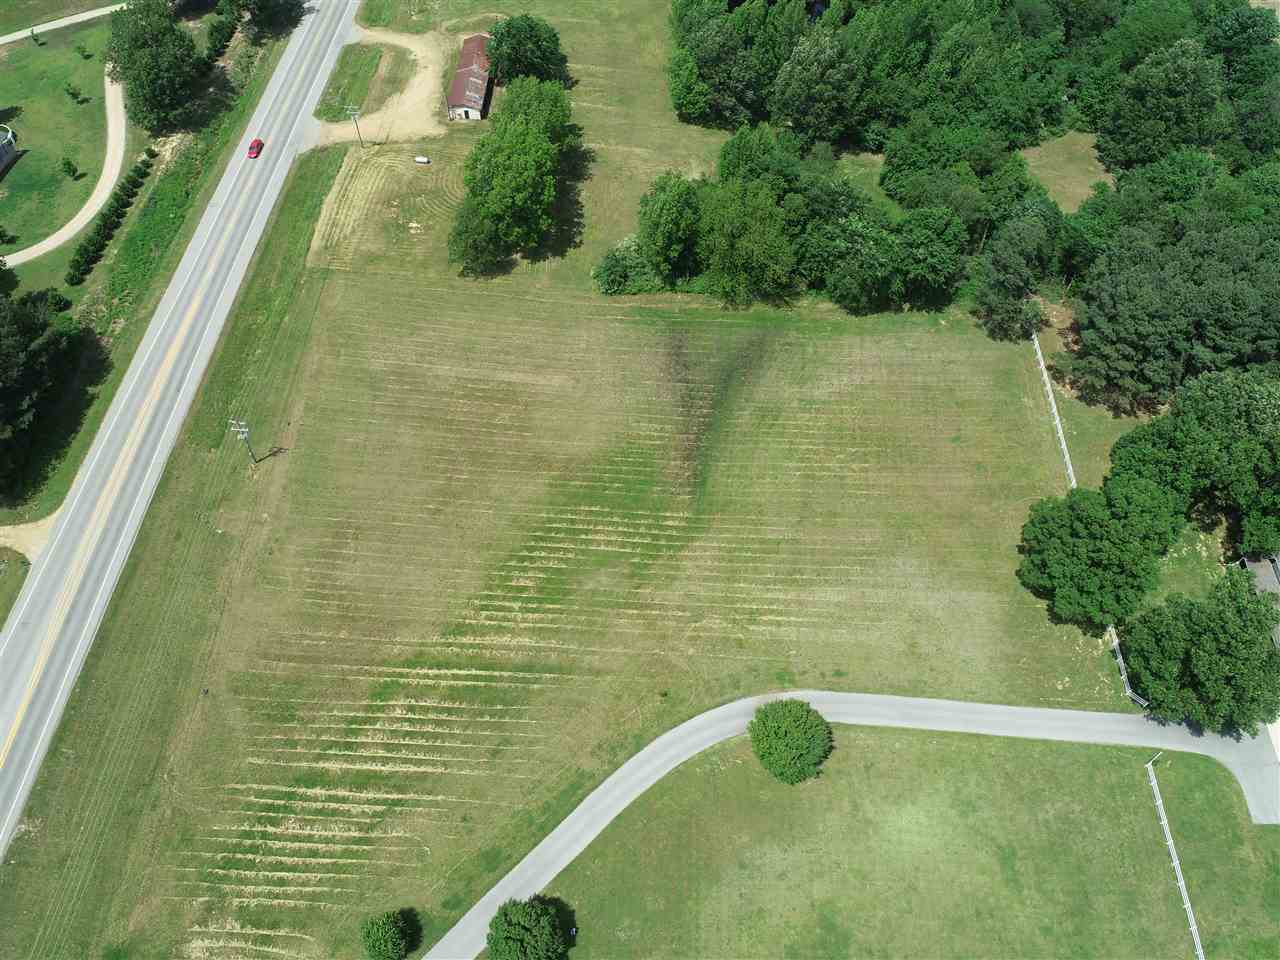 2 Cr 950 Brookland, AR 72417